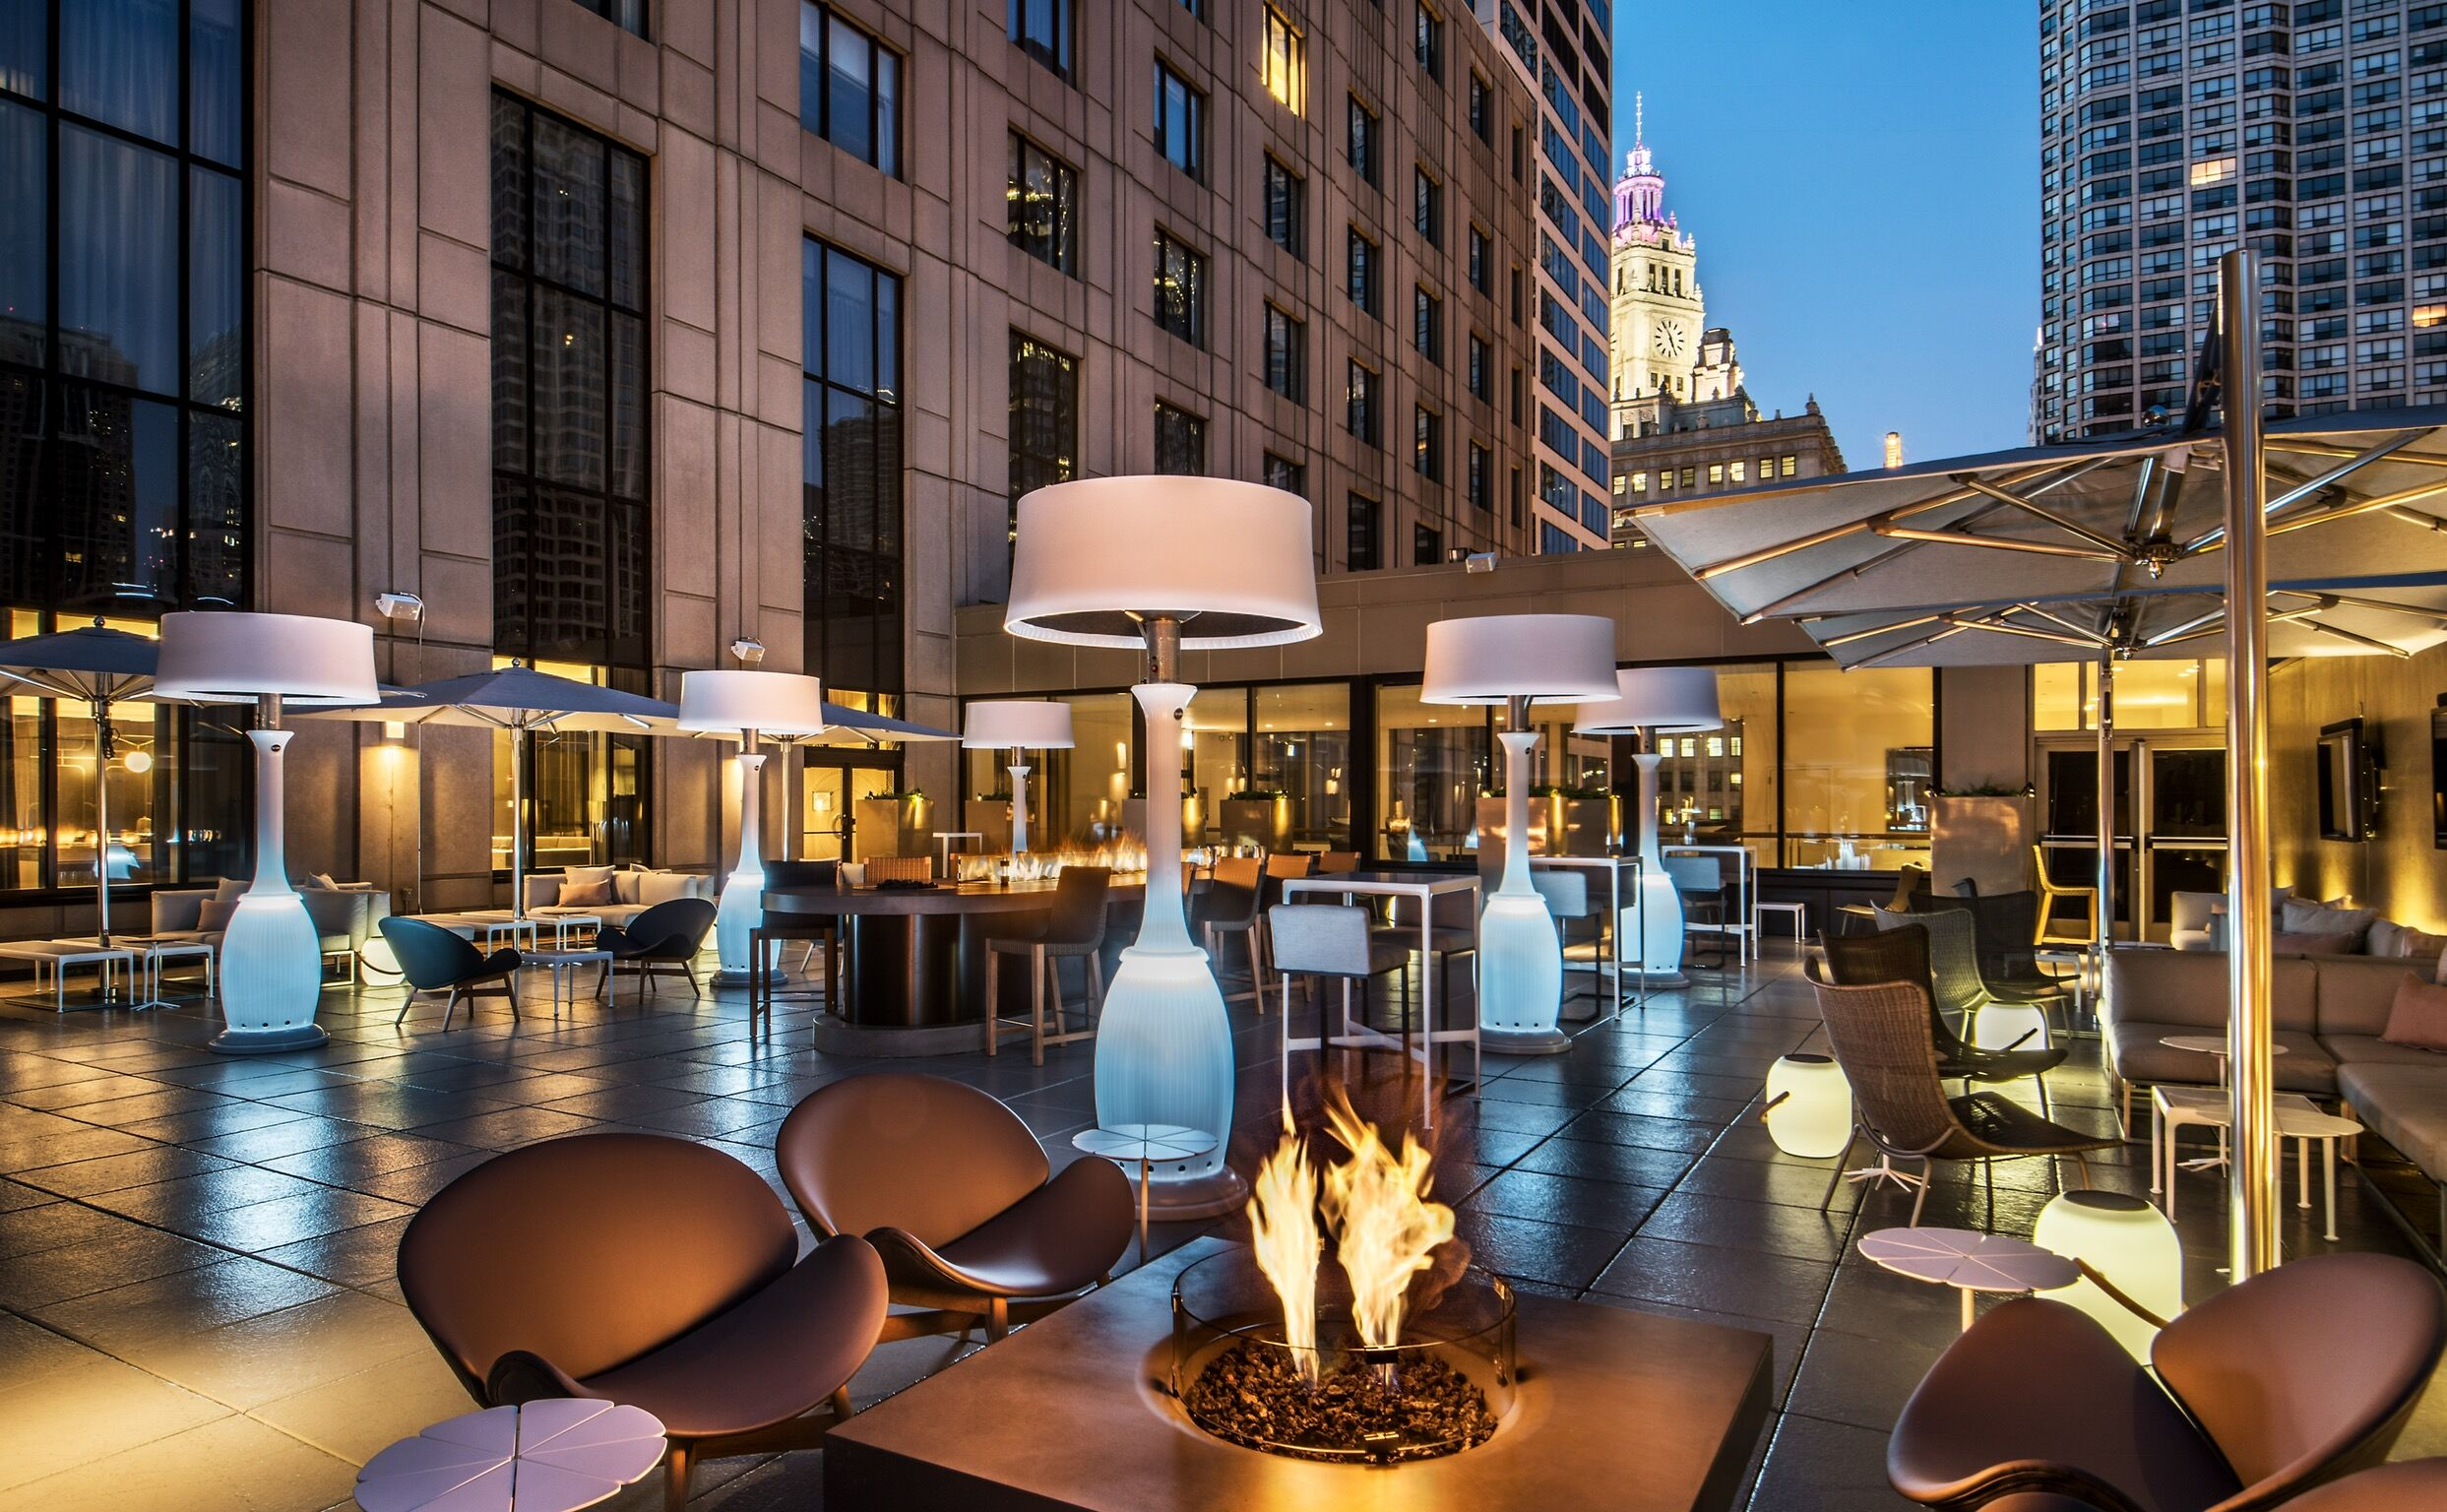 Bask in the sun: Best rooftop bars in Chicago